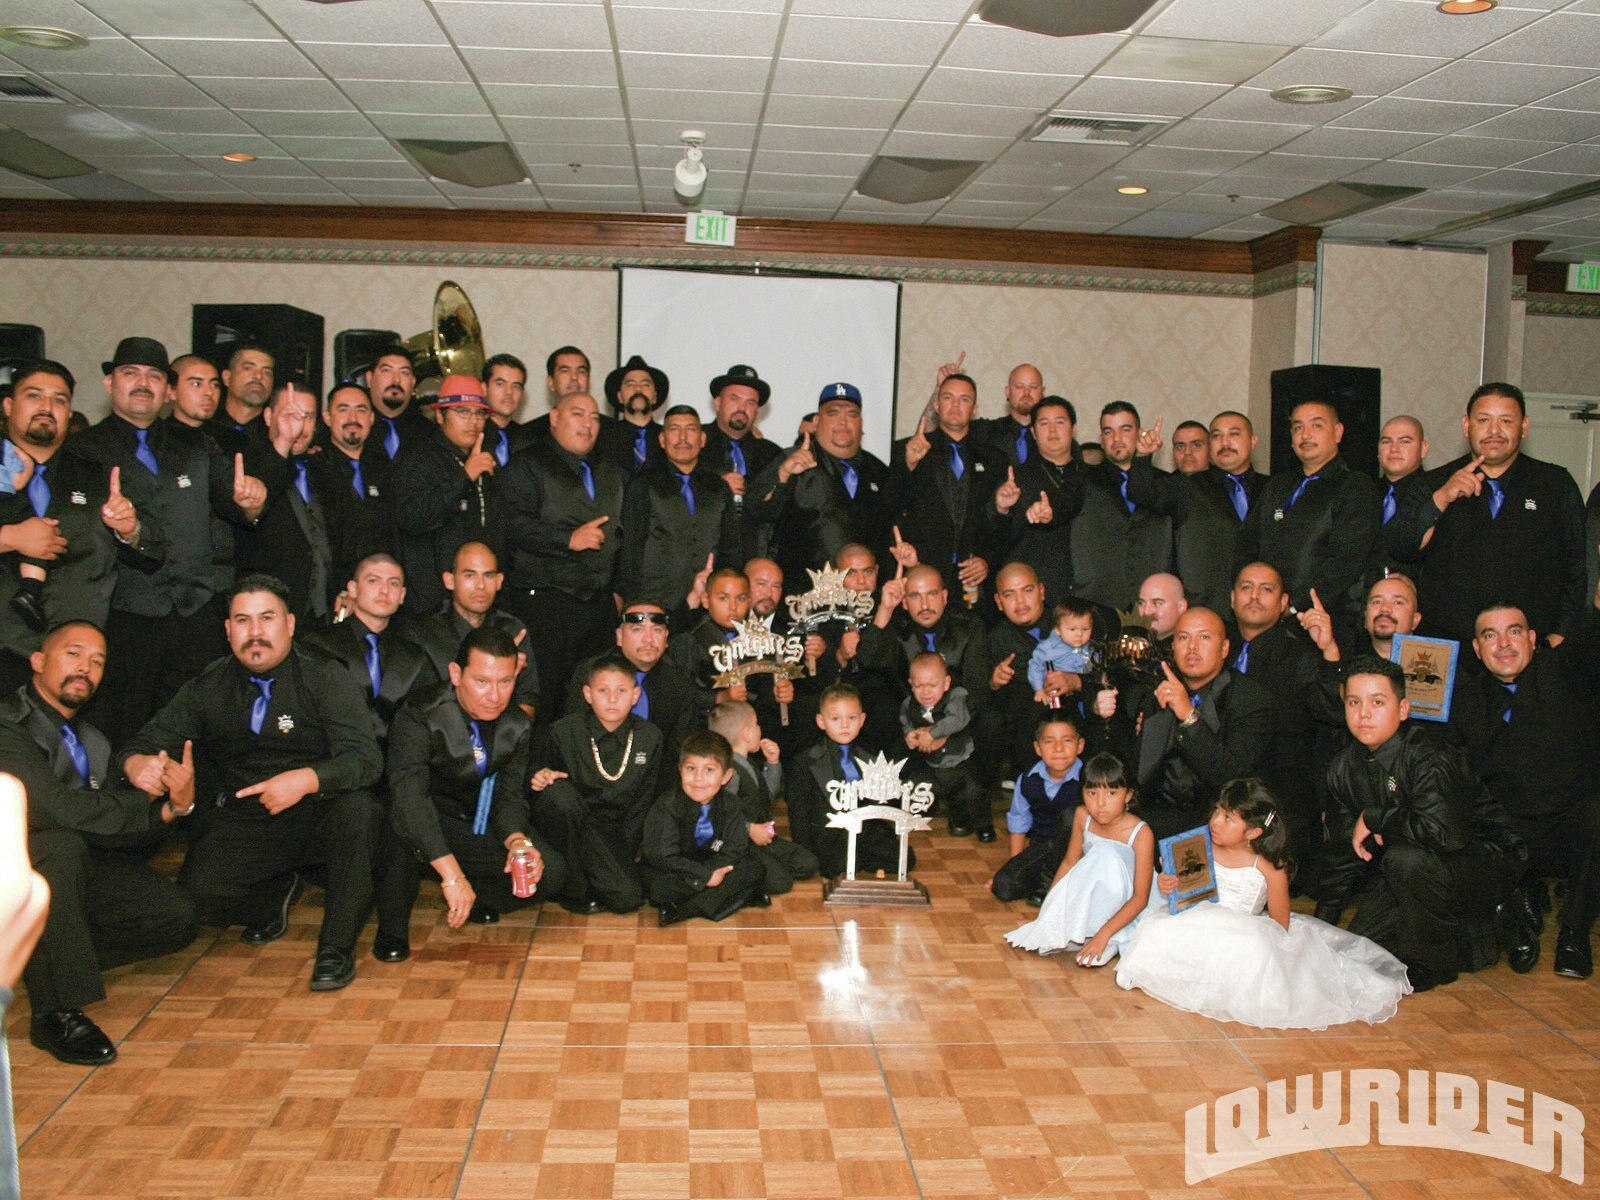 lrmp_1105_01_z-uniques_20th_anniversary-group_photo4